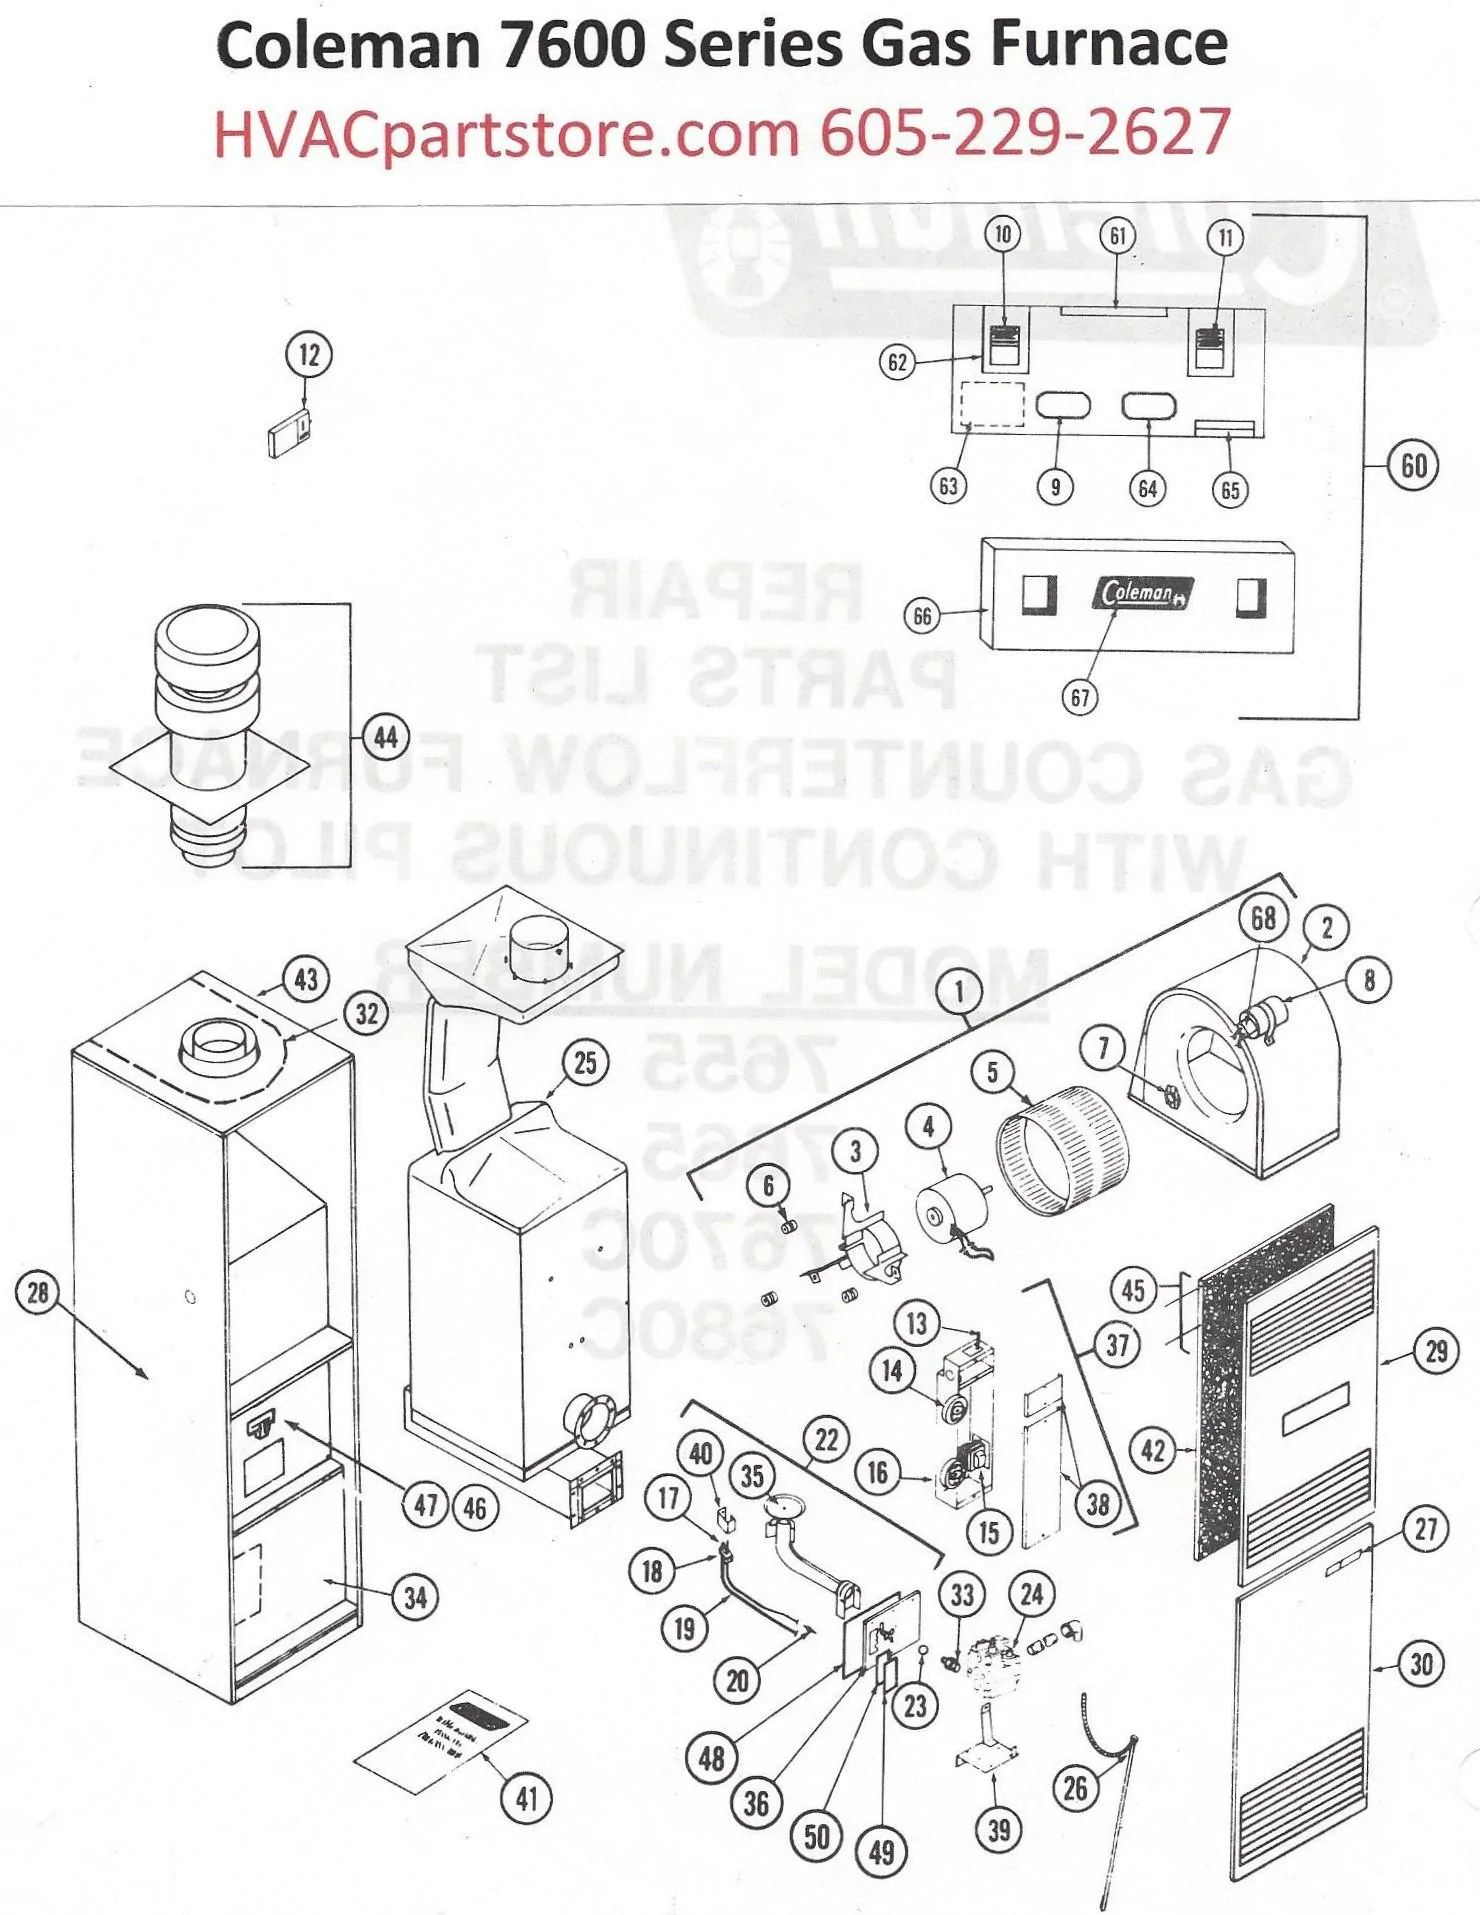 click here to view a manual for the coleman 7655 856 which includes wiring diagrams  [ 1480 x 1915 Pixel ]